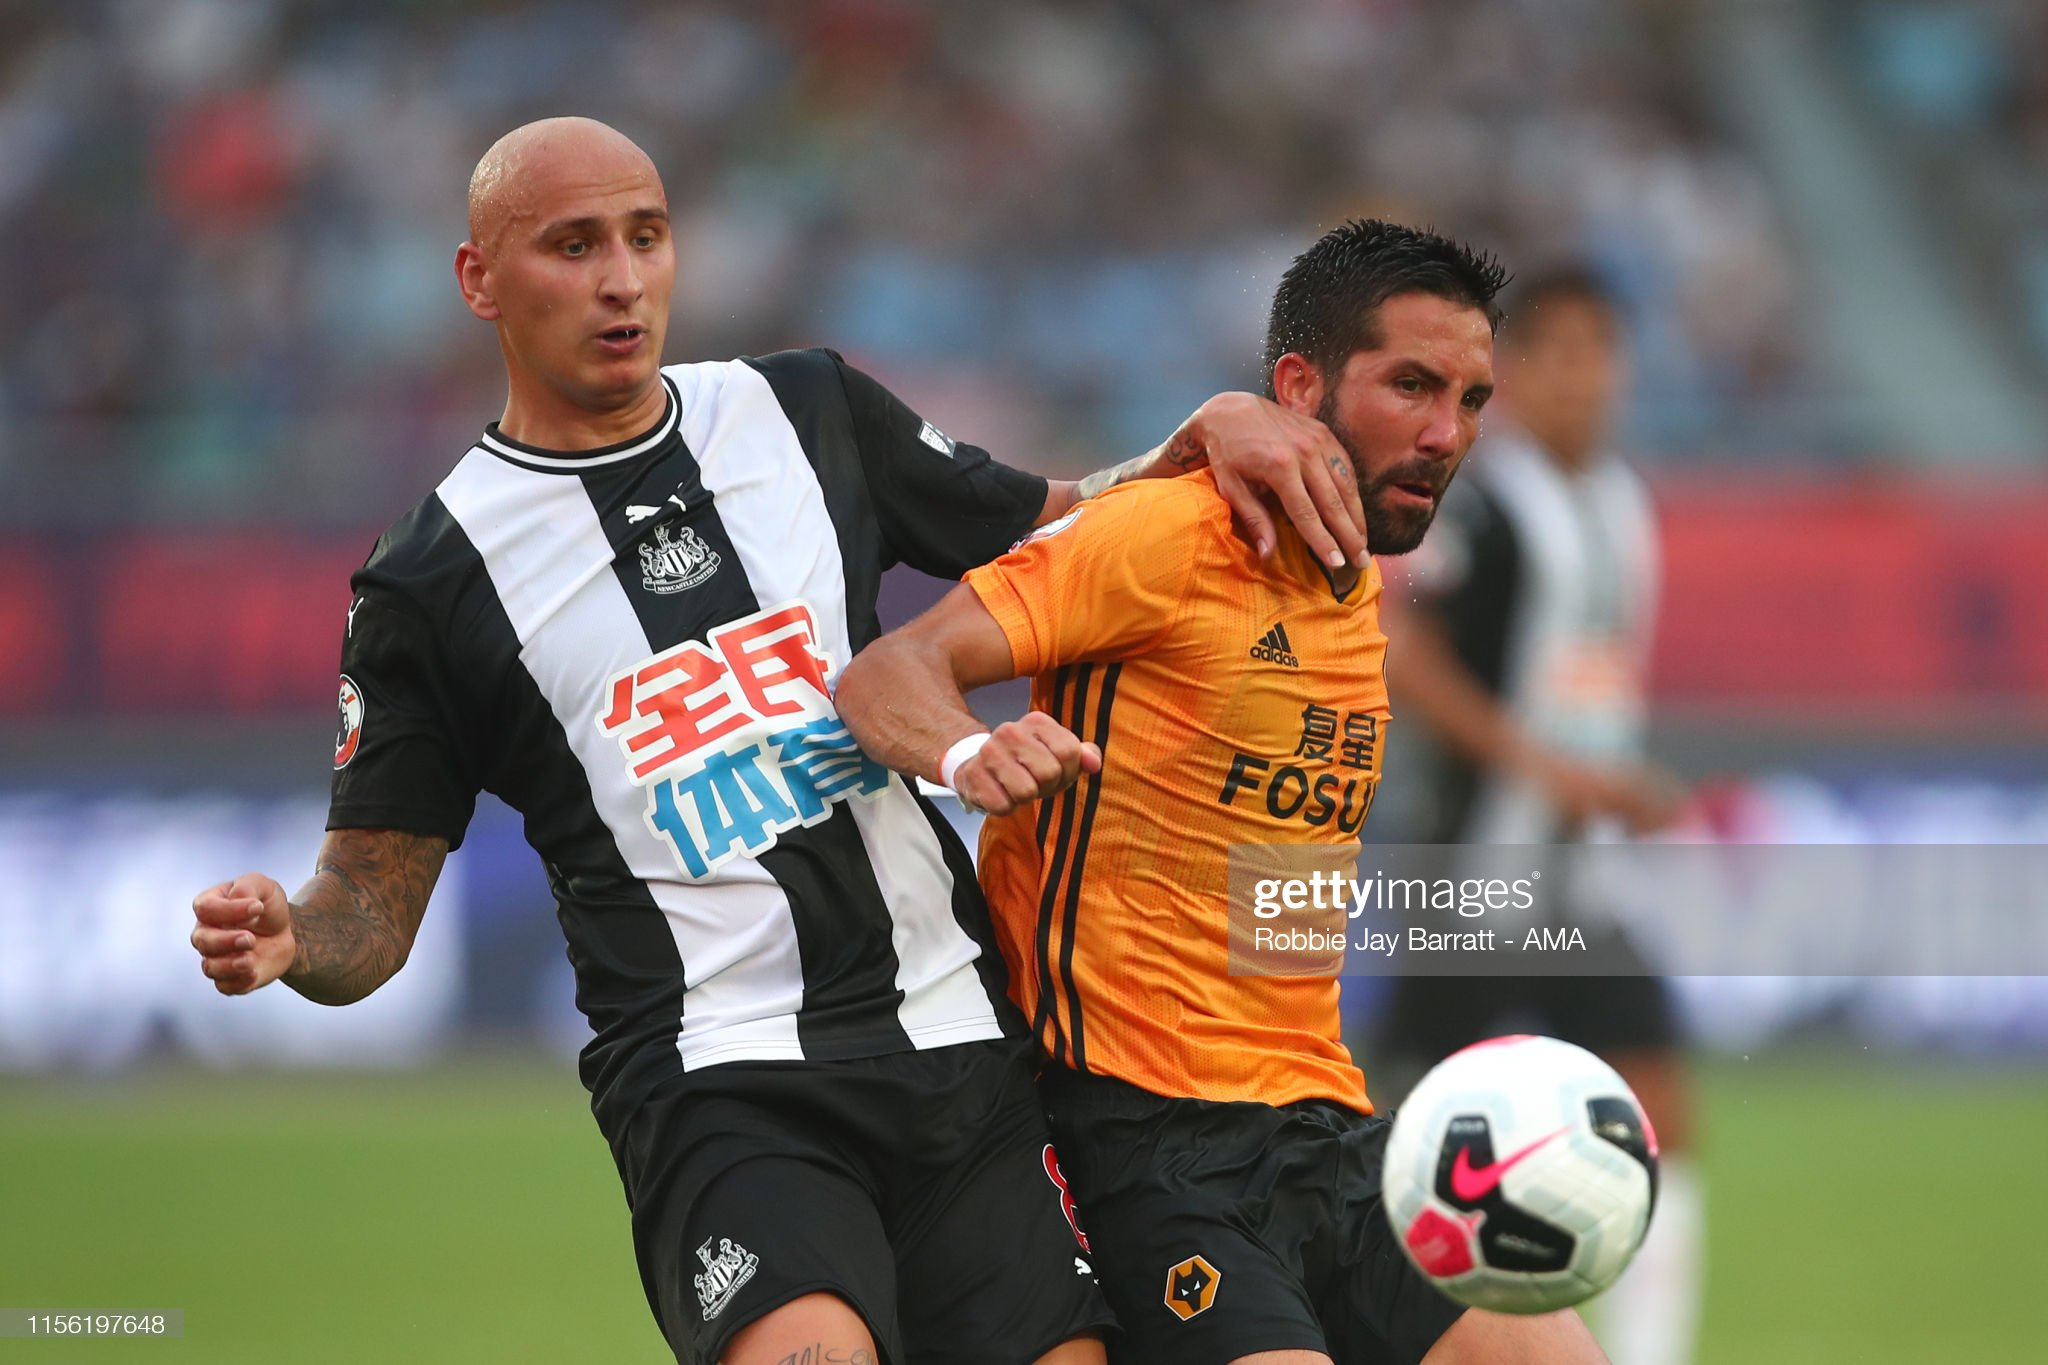 Newcastle v Wolves preview, prediction and odds